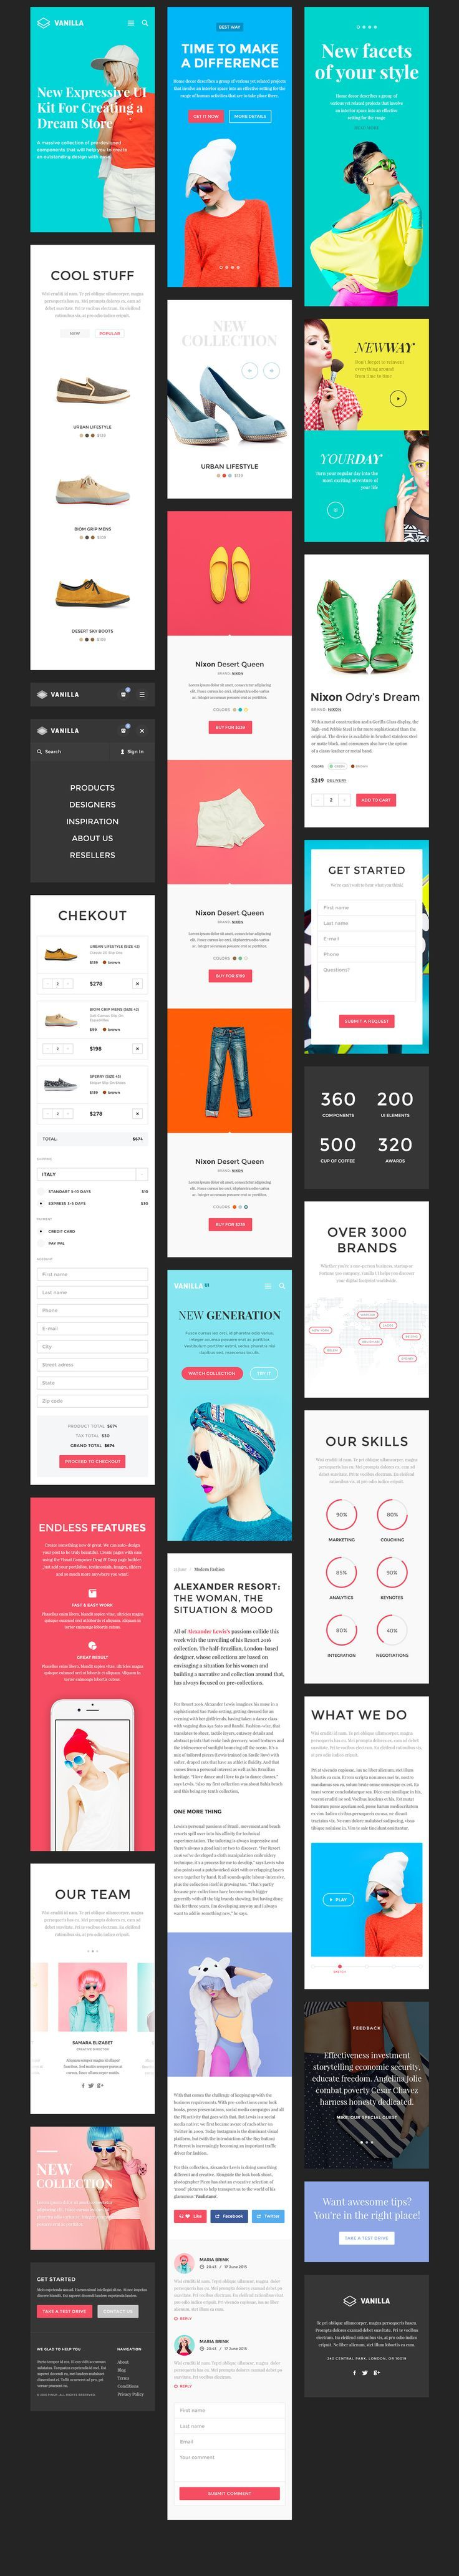 Vanilla UI Kit. If you like UX, design, or design thinking, check out…